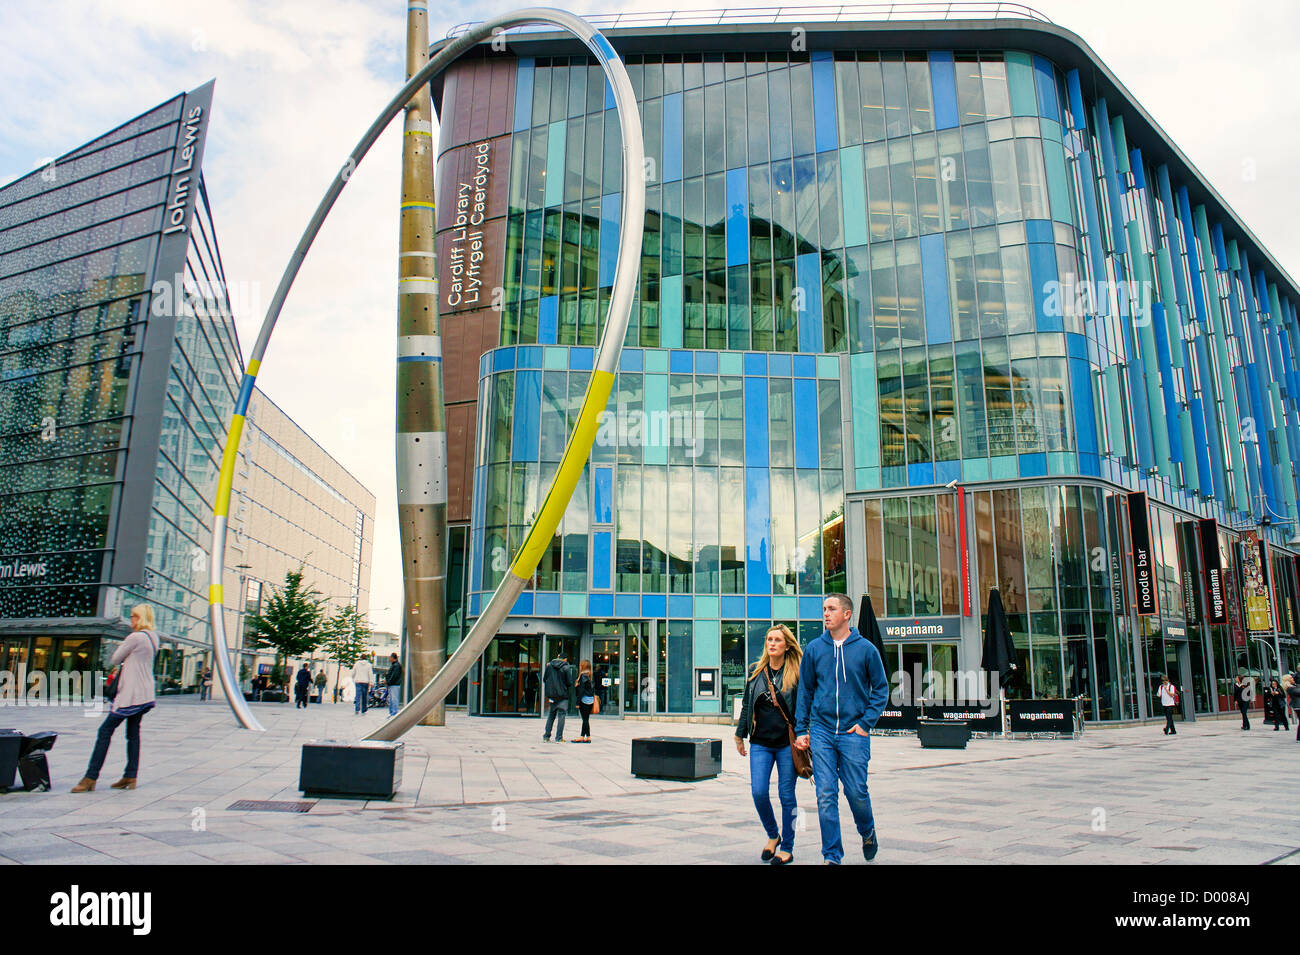 Alliance sculpture by Jean-Bernard Metais. John Lewis store (left) and Central Library. The Hayes, Cardiff city Stock Photo